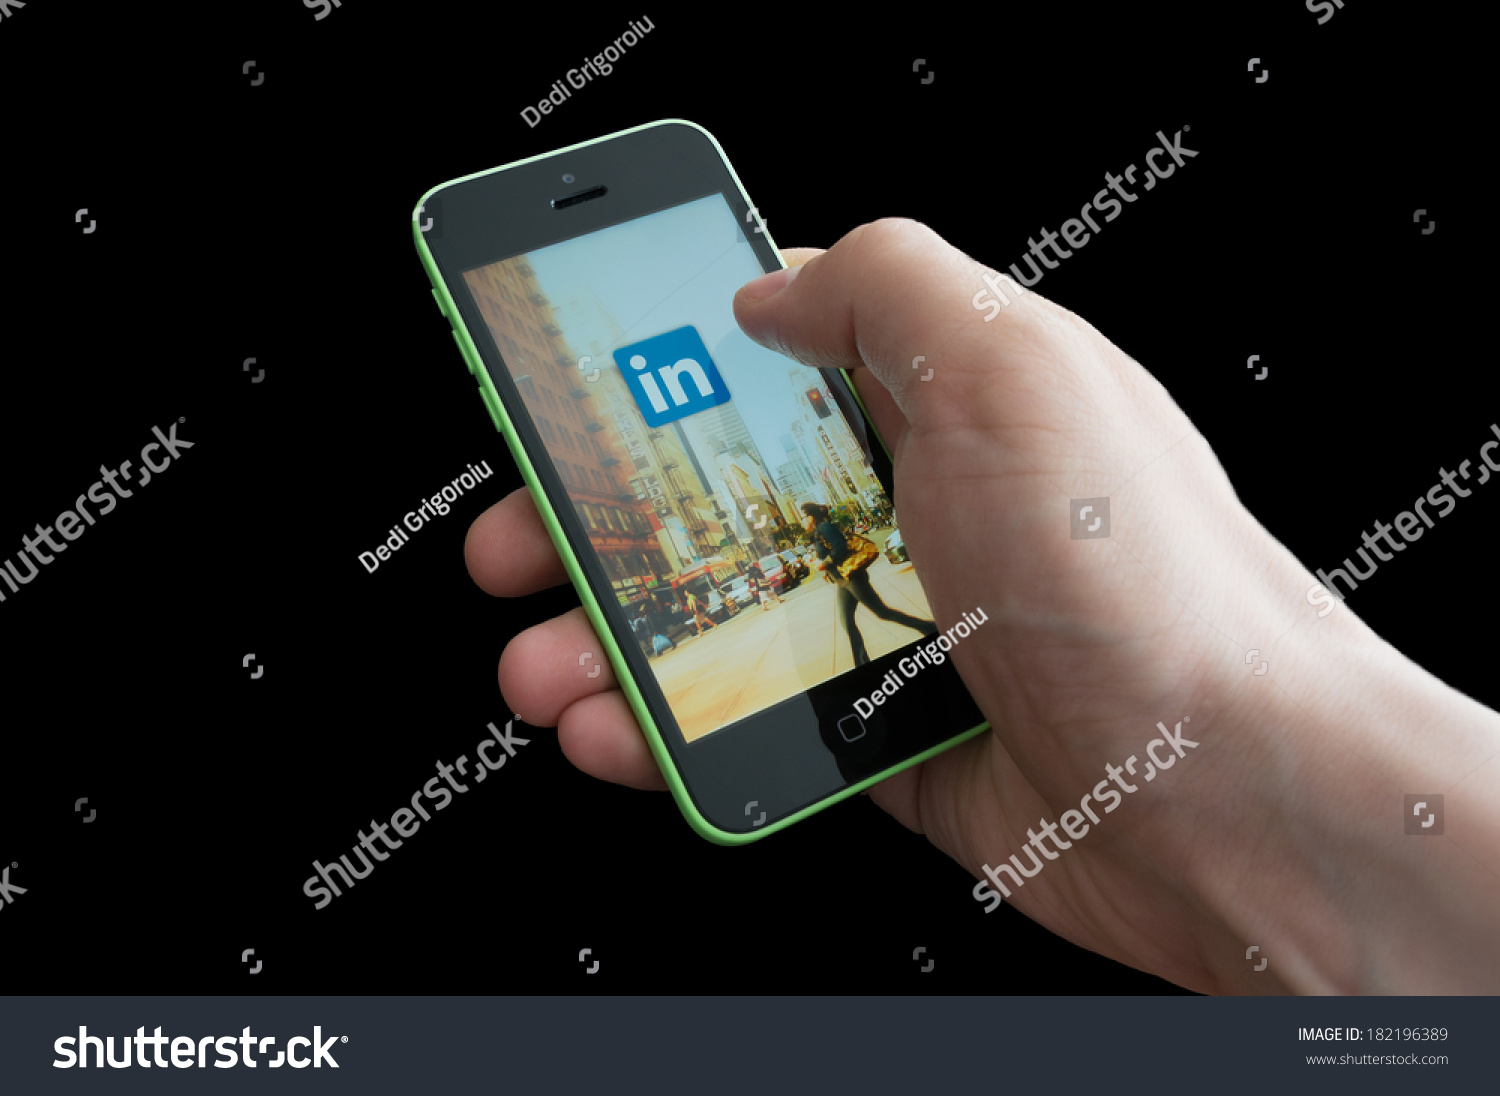 how to find out email address from linkedin